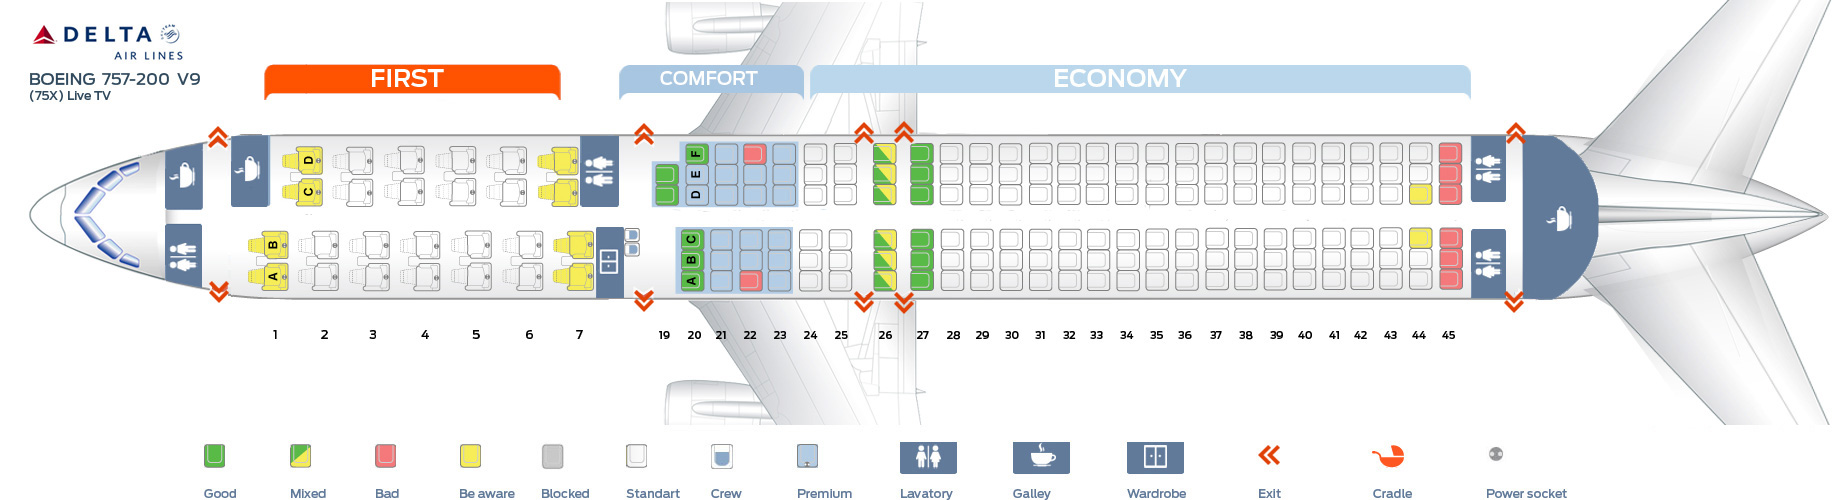 Seat_map_Delta_Airlines_Boeing_757-200_75X_v9